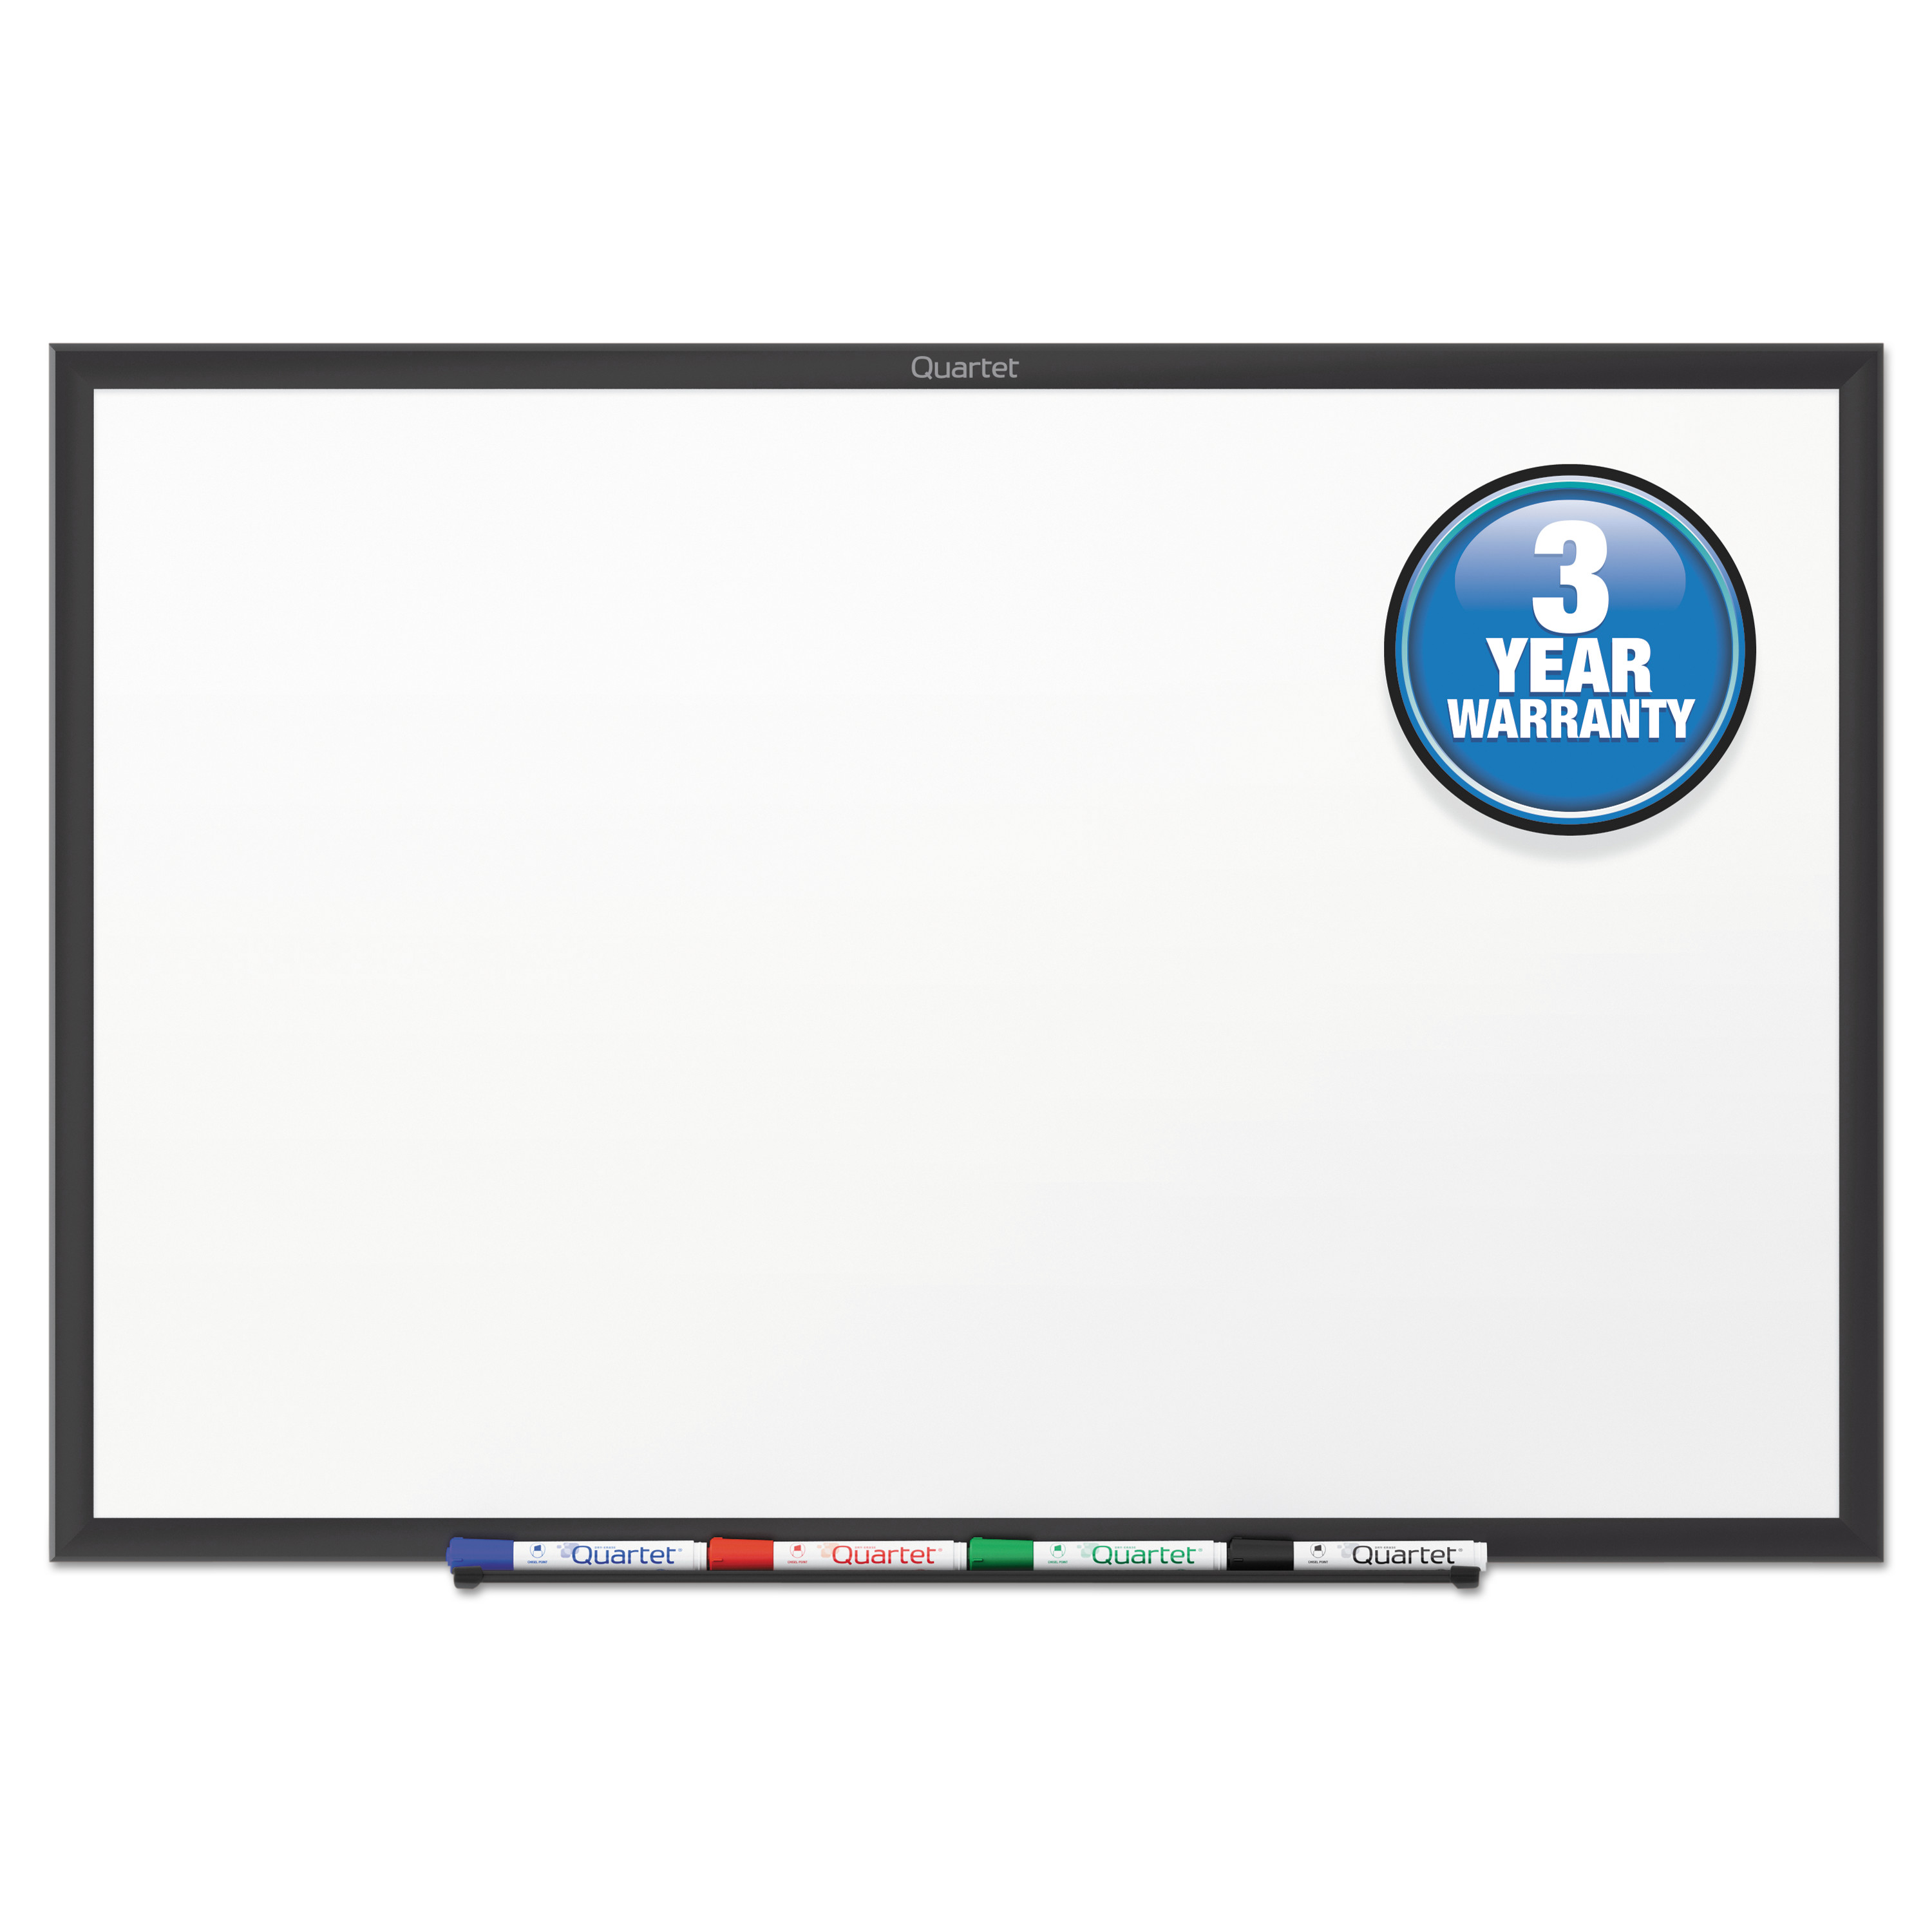 Quartet Classic Series Total Erase Dry Erase Board, 60 x 36, White Surface, Black Frame -QRTS535B